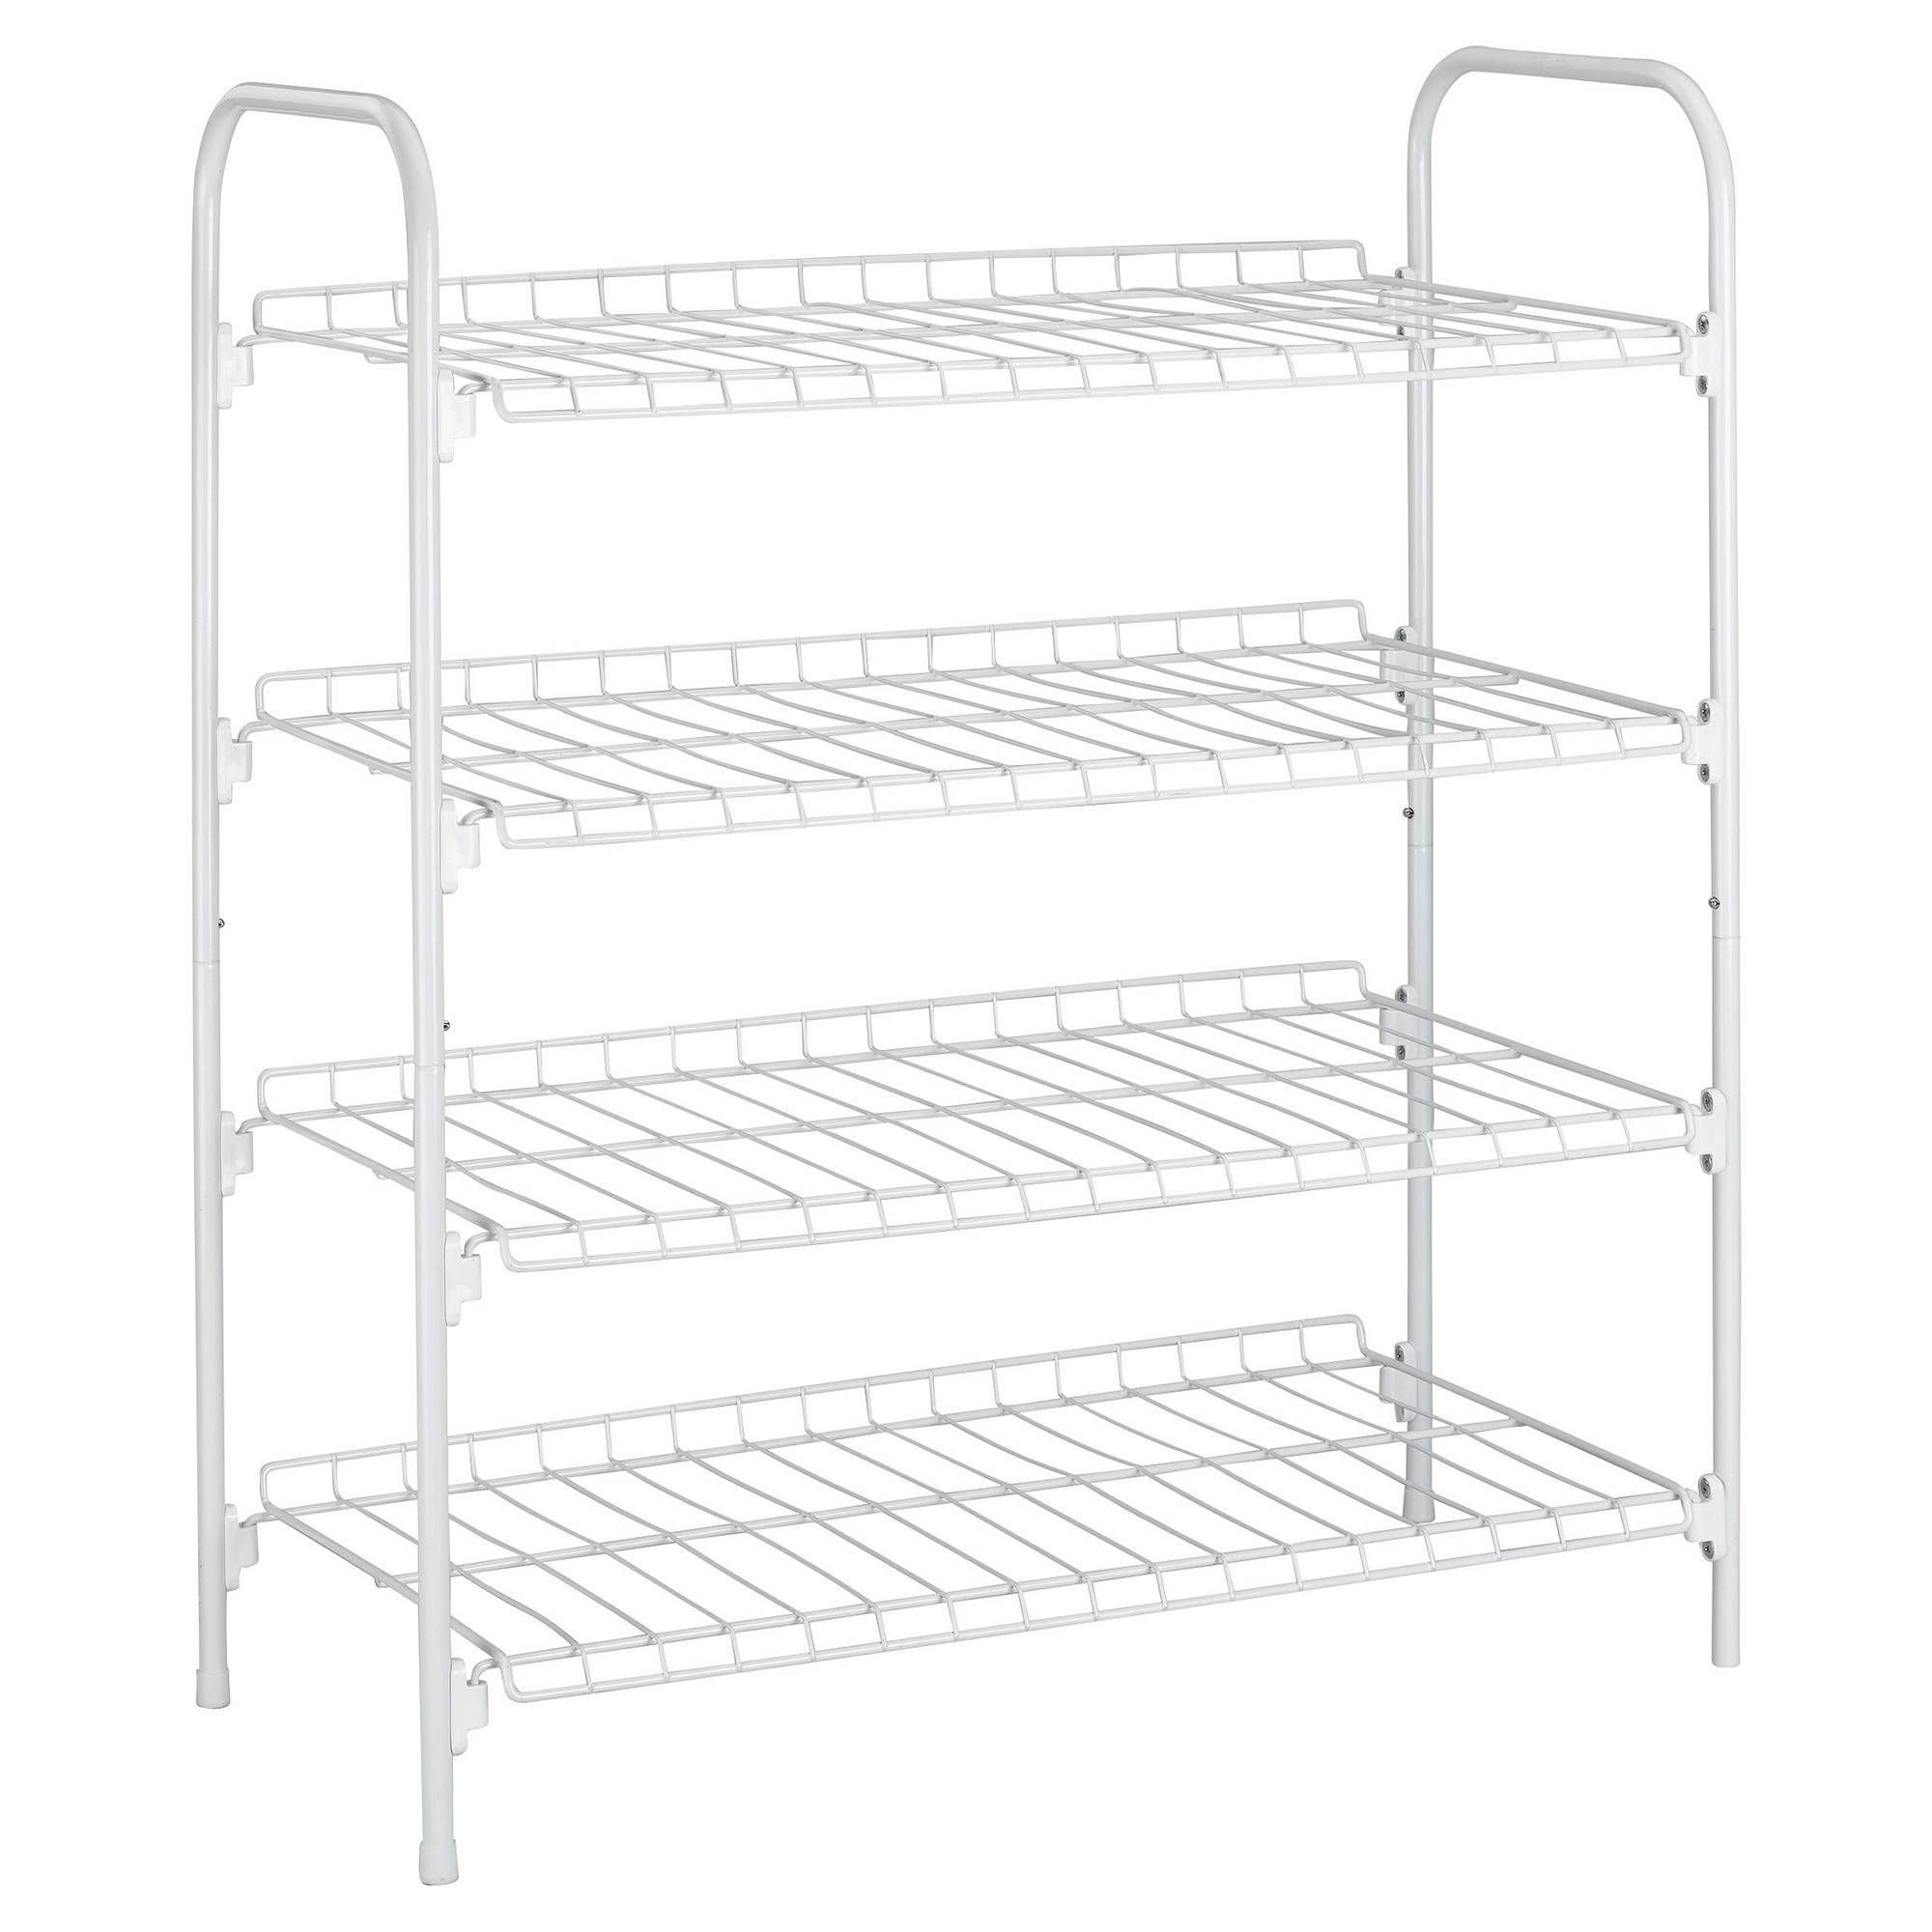 Other 4 tier white shoe rack